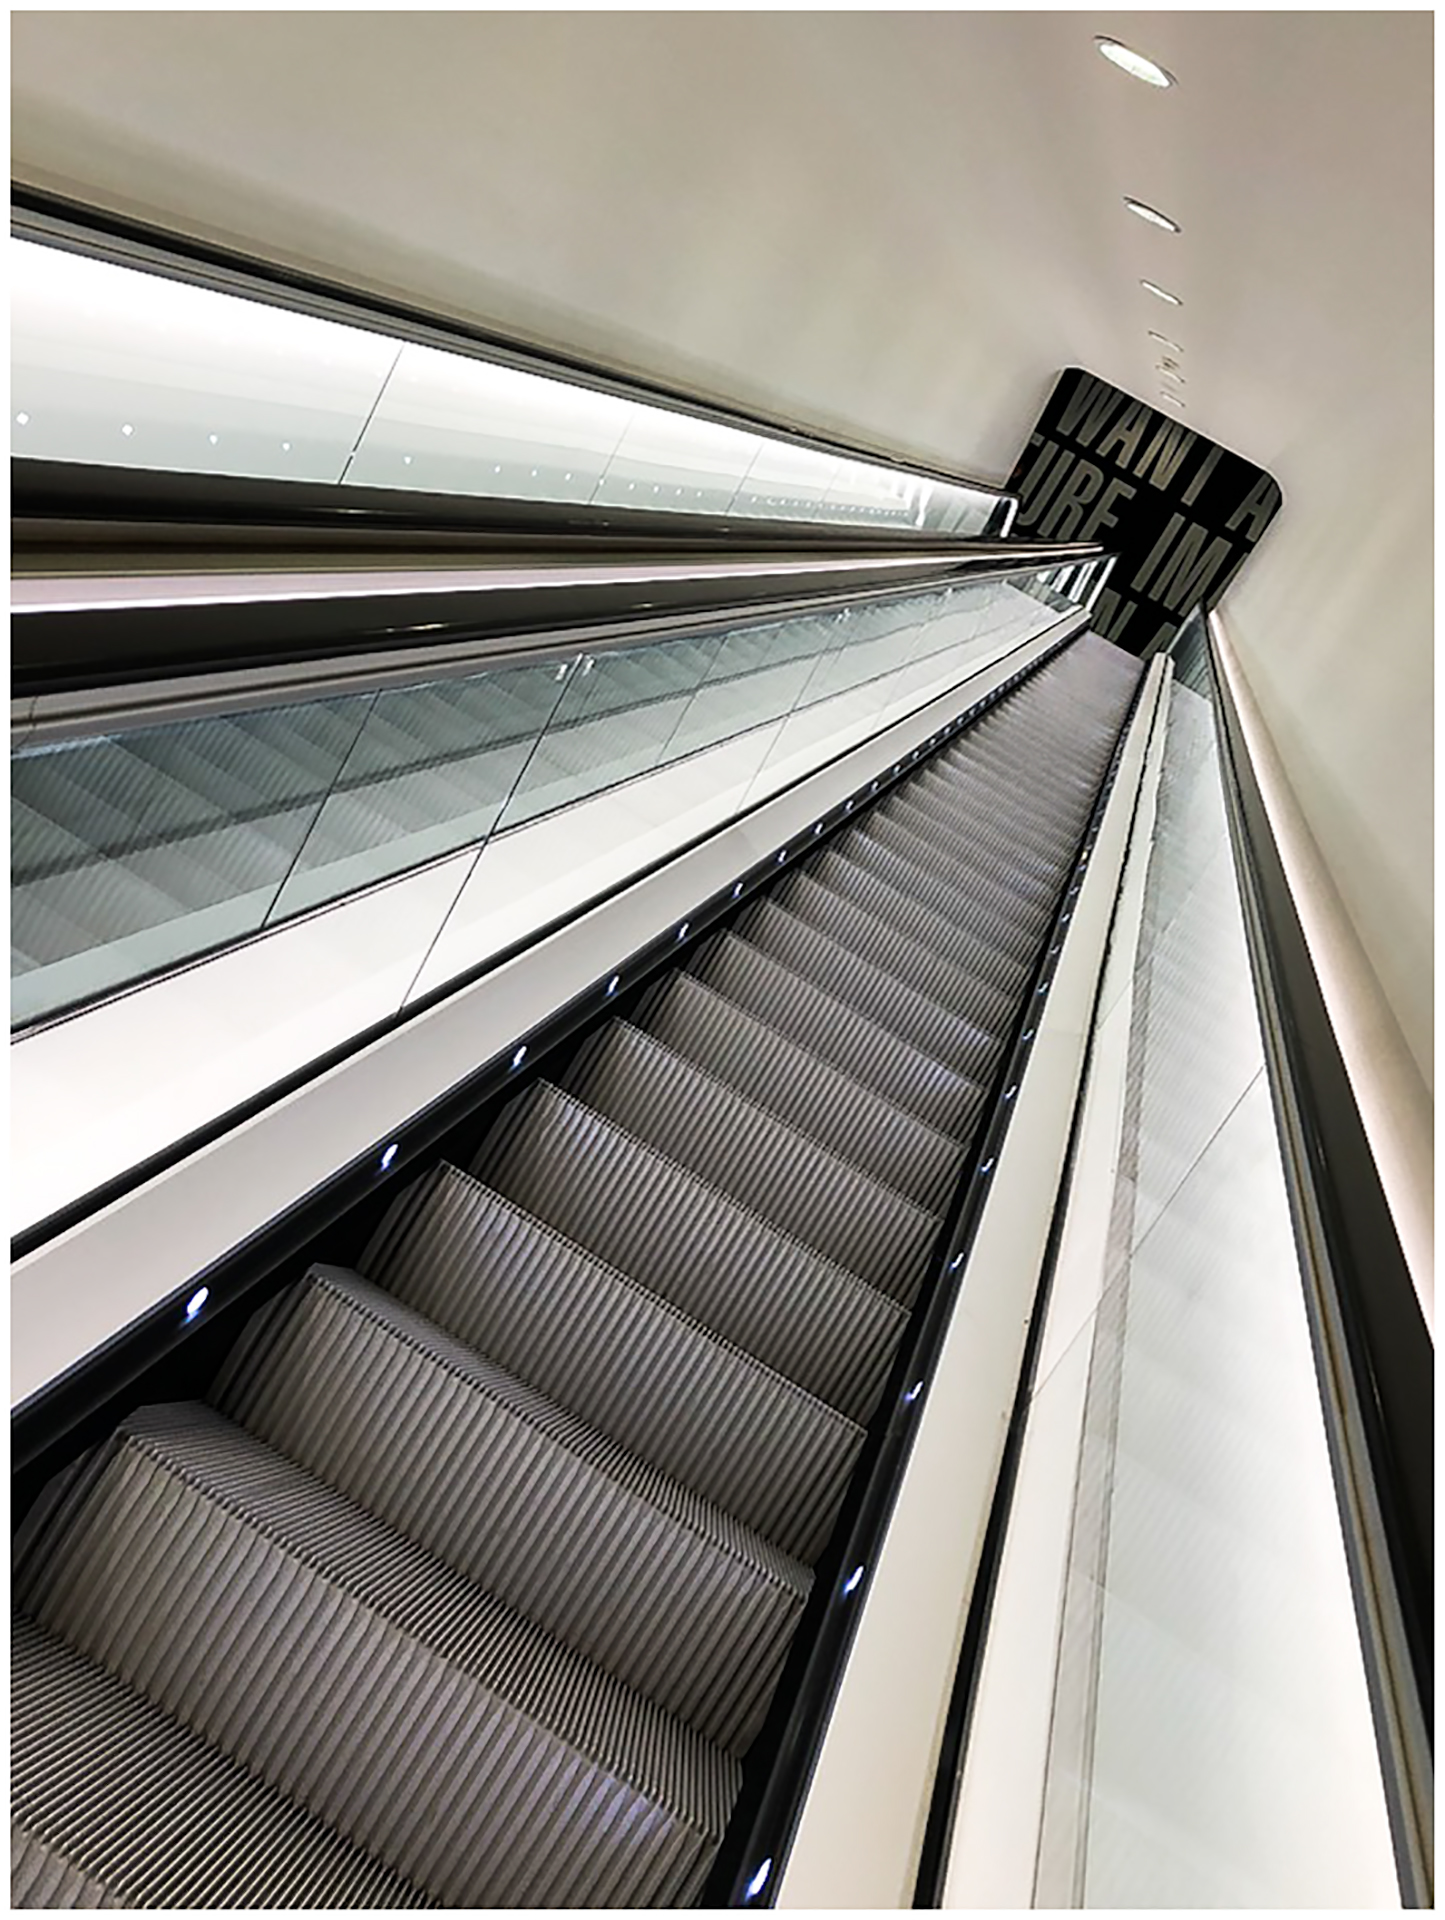 29 Escalator